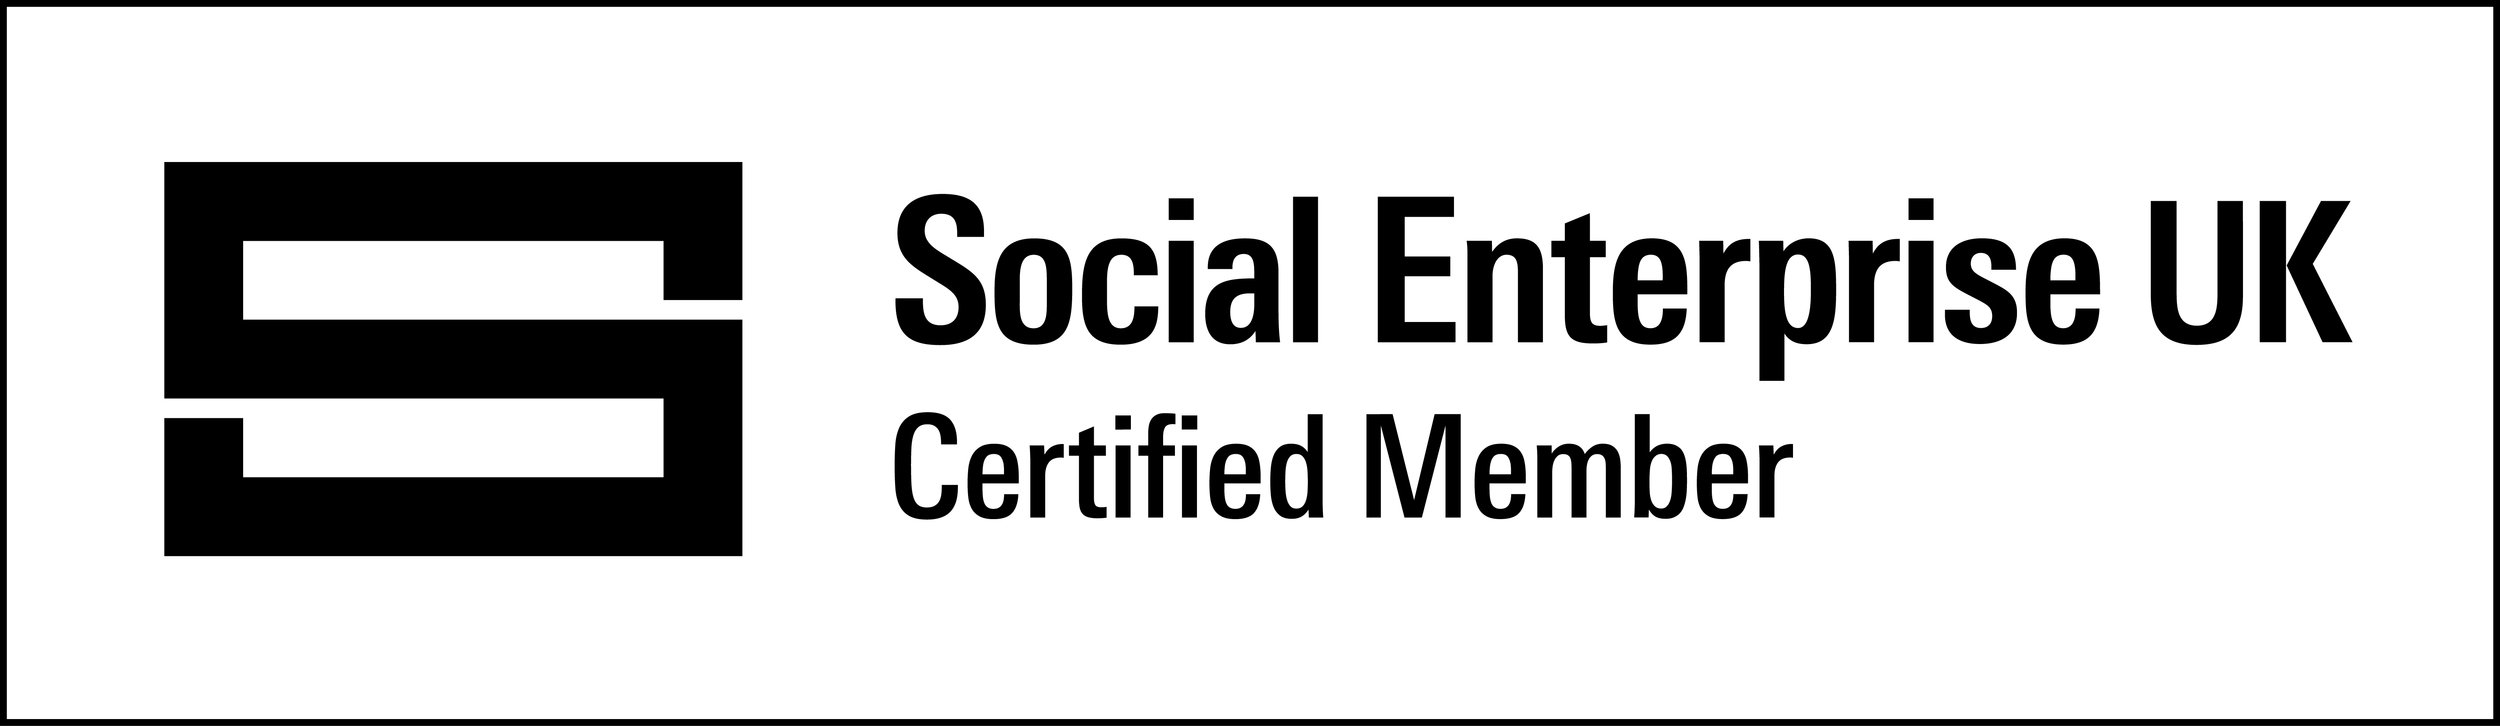 Certified Social Enterprise Badge - Black.jpg